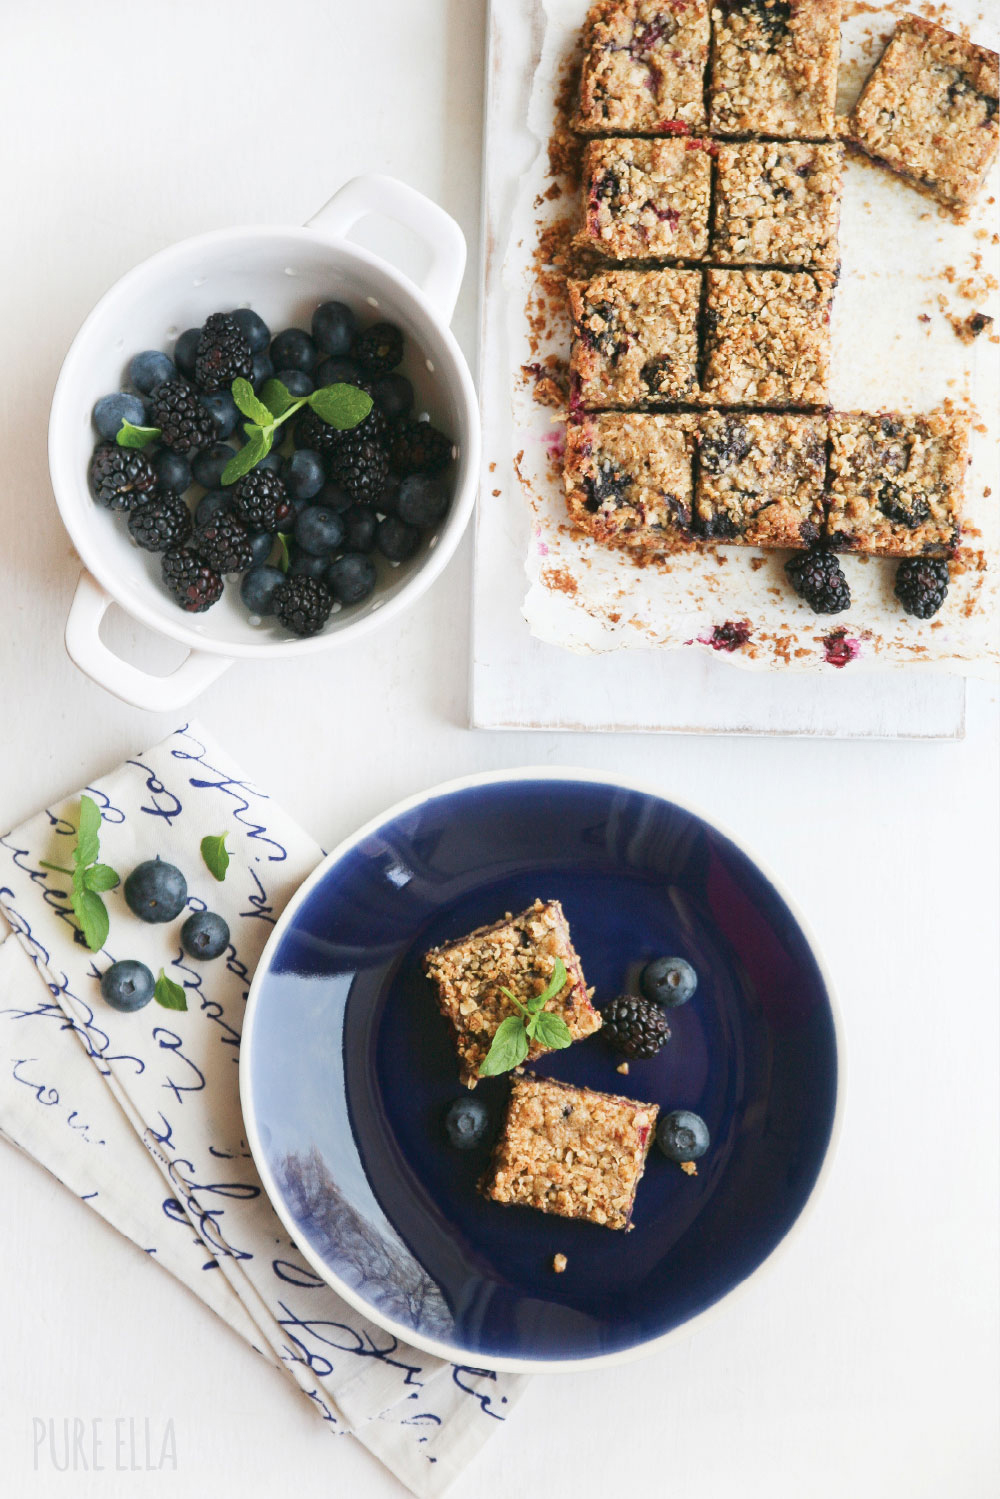 Pure-Ella-gluten-free-vegan-blueberry-blackberry-crumb-squares7